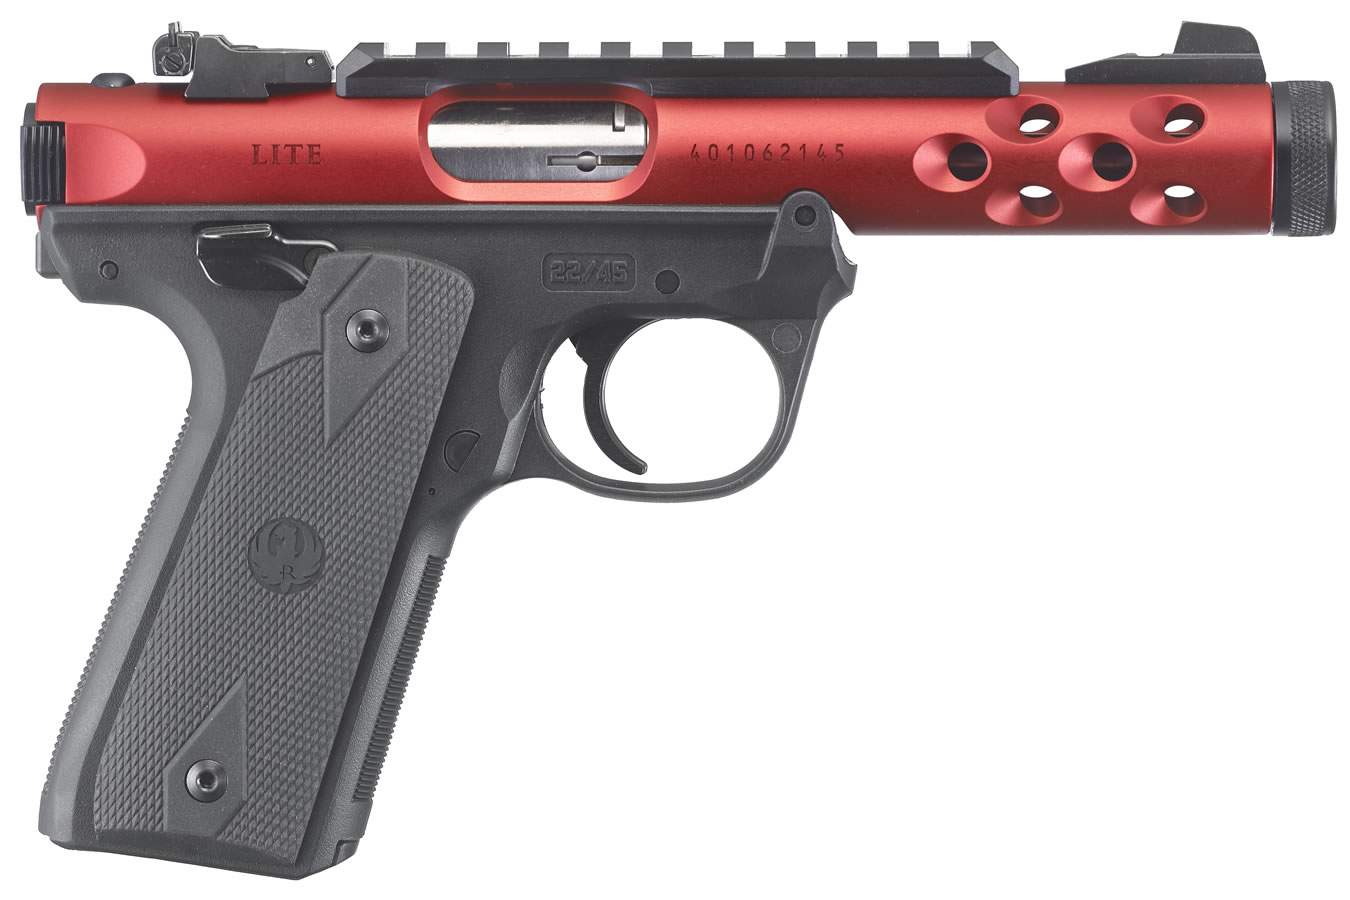 MARK IV 22/45 LITE 22LR RED ANODIZED